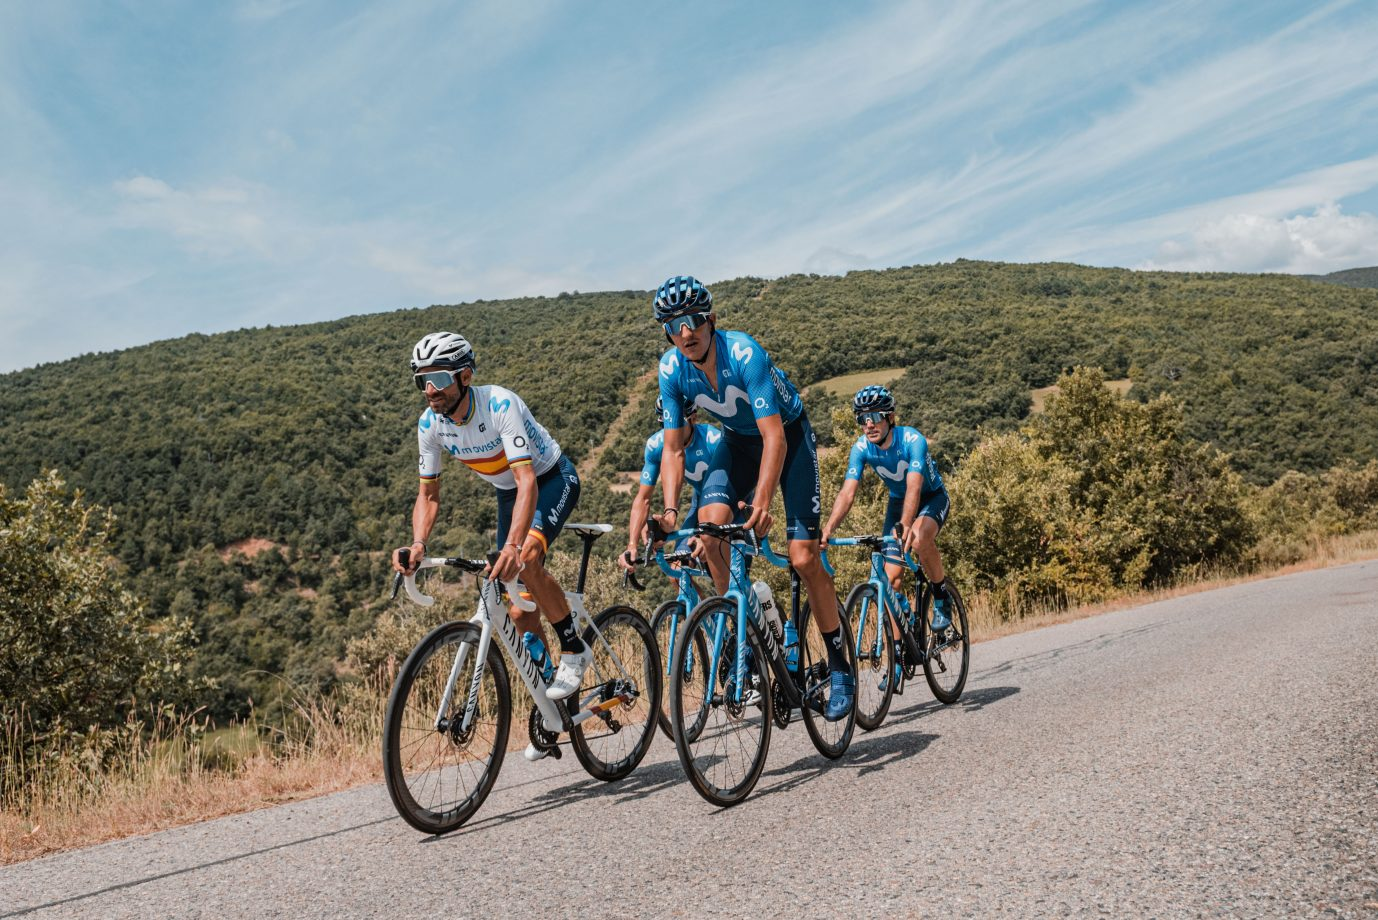 Imagen de la noticia 'Behind-the-scenes at the Movistar Team's Pyrenees training camp'